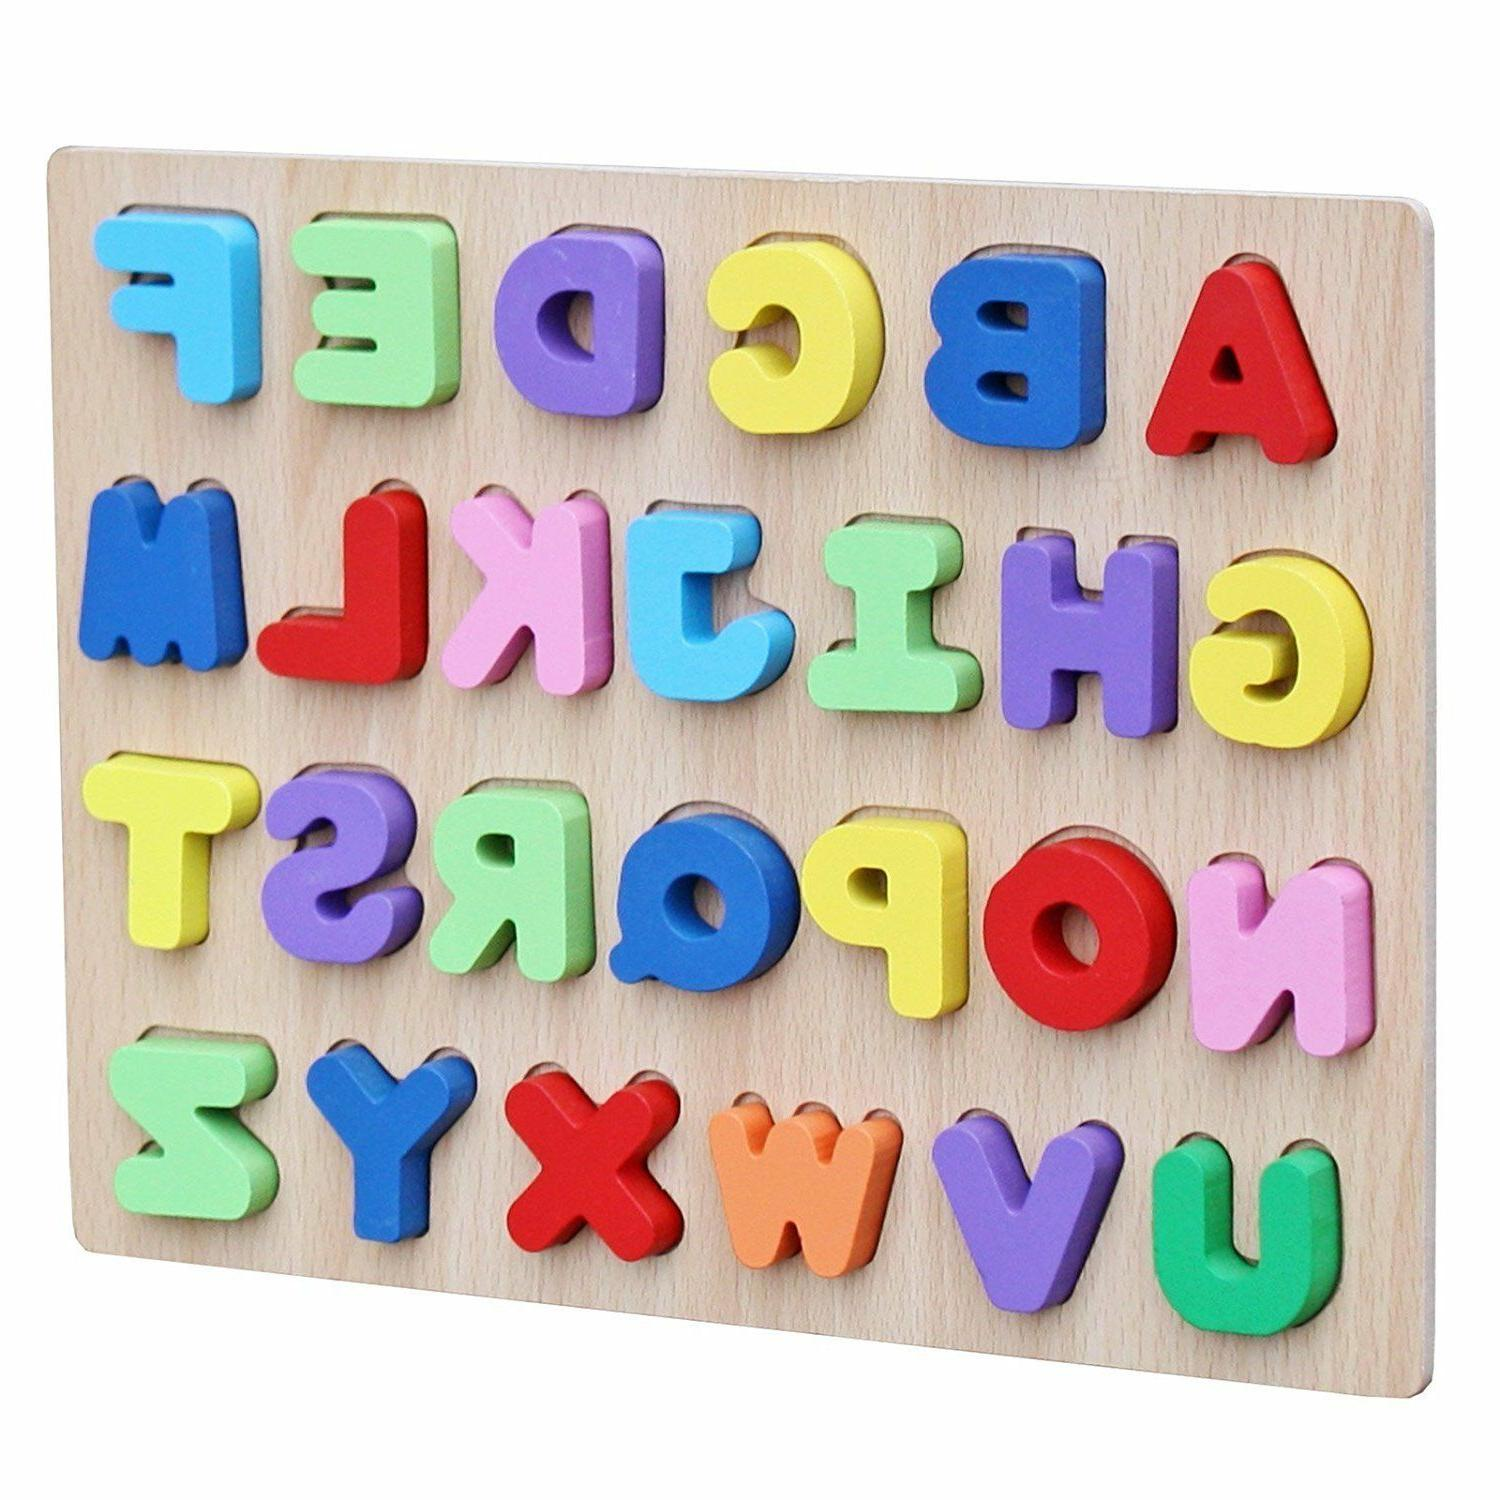 Wooden Colorful Alphabet English Letters Peg Puzzle Jigsaw E